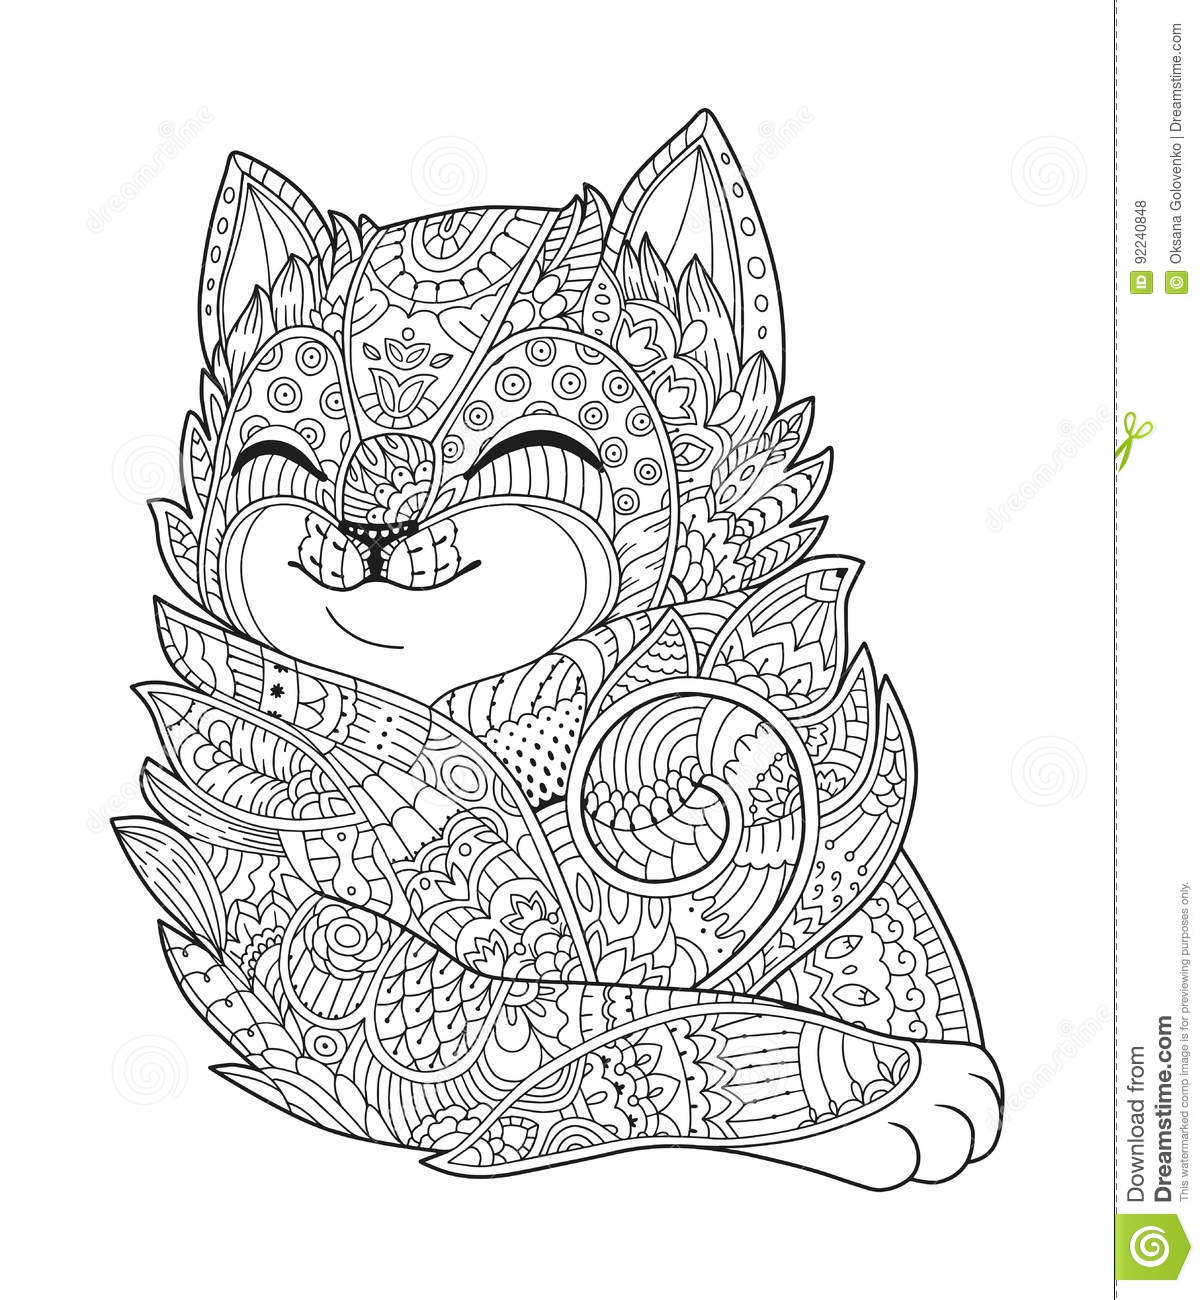 Zen cat coloring page - Zen Art Cat Hand Drawn Vector Fluffy Cat Portrait In Zentangle Style For Adult Coloring Page Zen Doodle